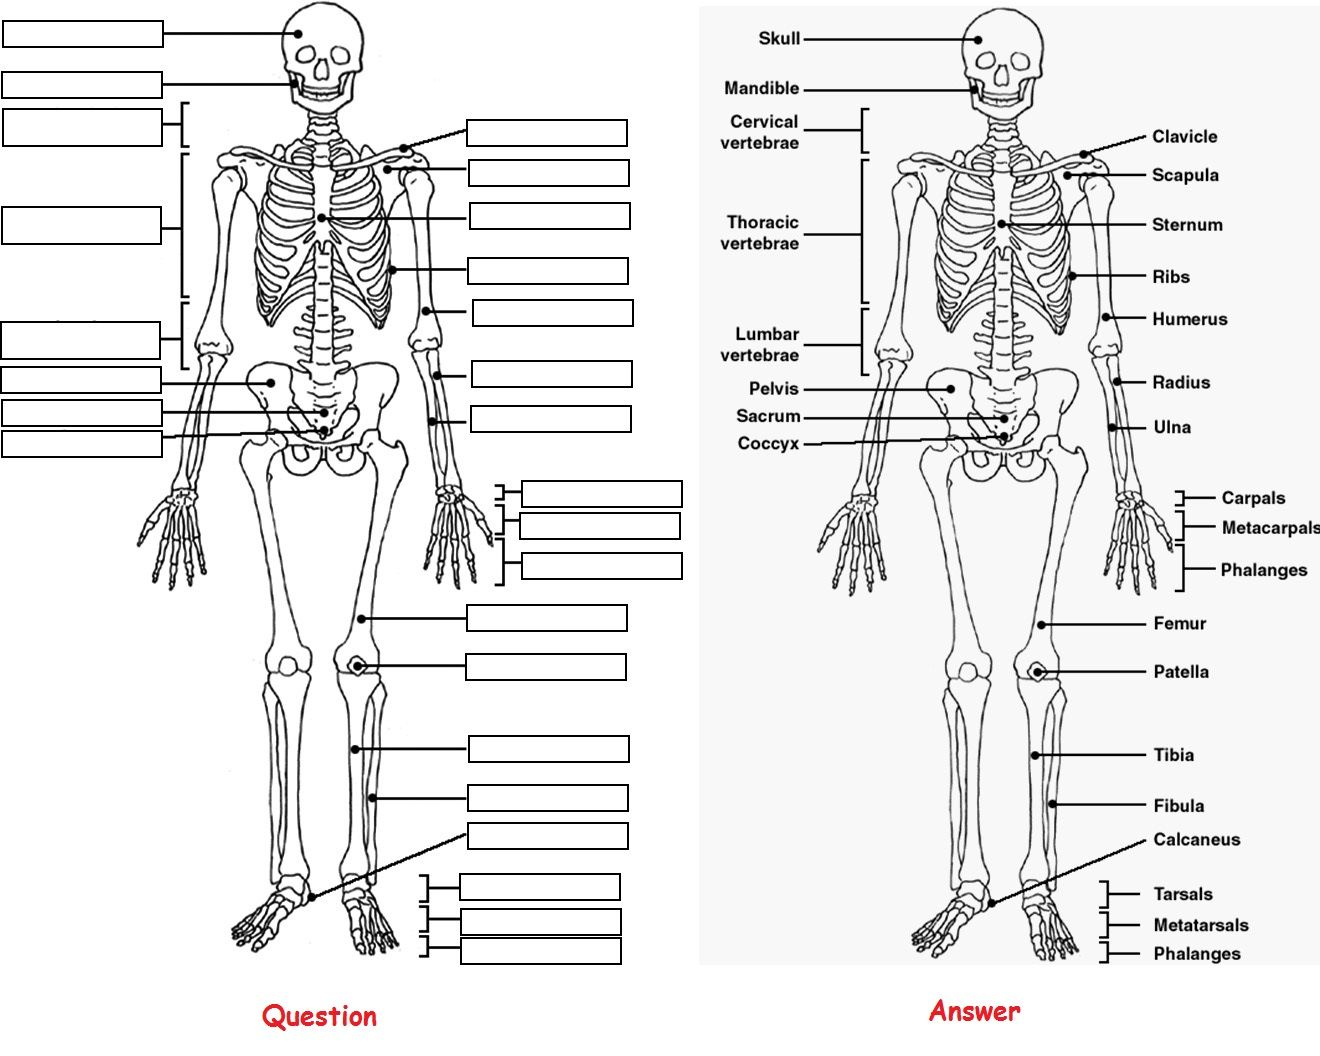 Skeleton Anatomy Coloring Pictures Label Question And Answer Anatomy Coloring Book Skeleton Anatomy Anatomy Bones